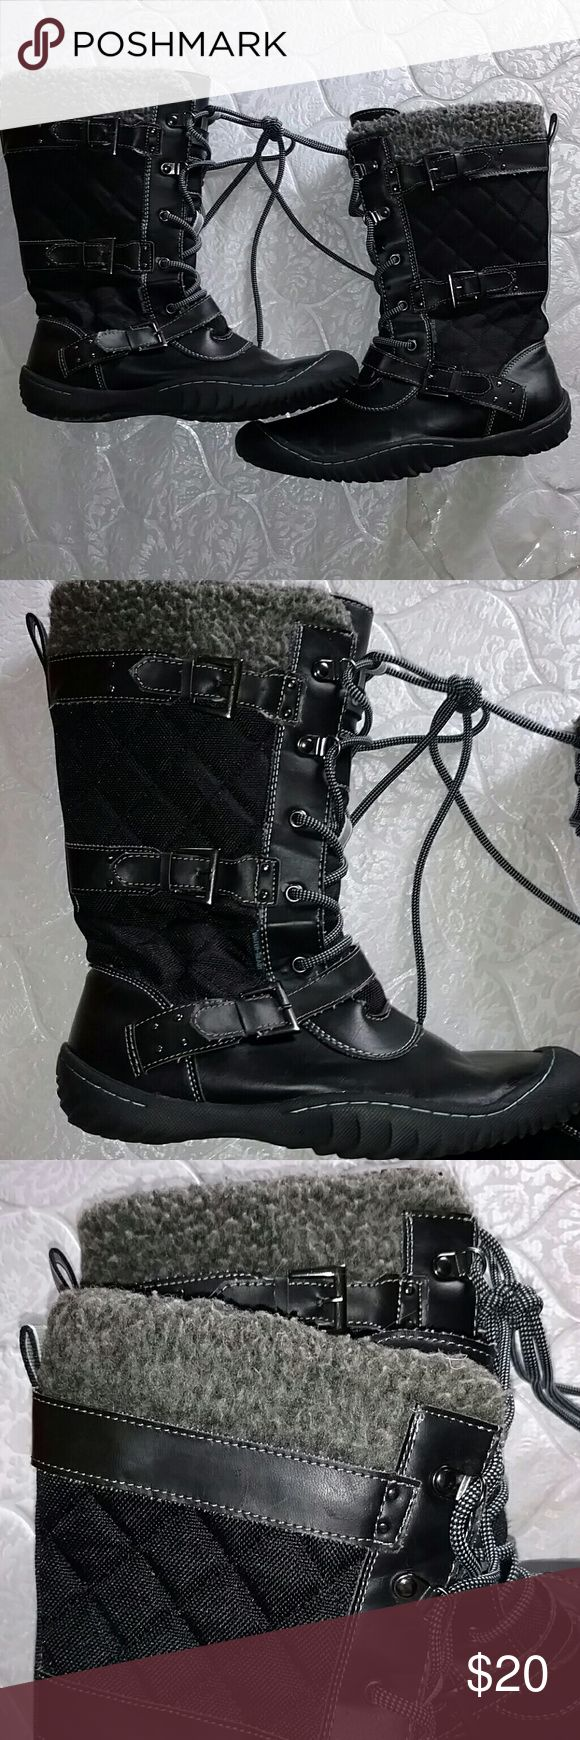 Water-resistant Jeep boots GREAT DEAL Good used condition size 8 1/2  Water ready, Jeep engineered traction sole, rain lace up boots.  Price for quick sale sacnicoca liminia Shoes Lace Up Boots